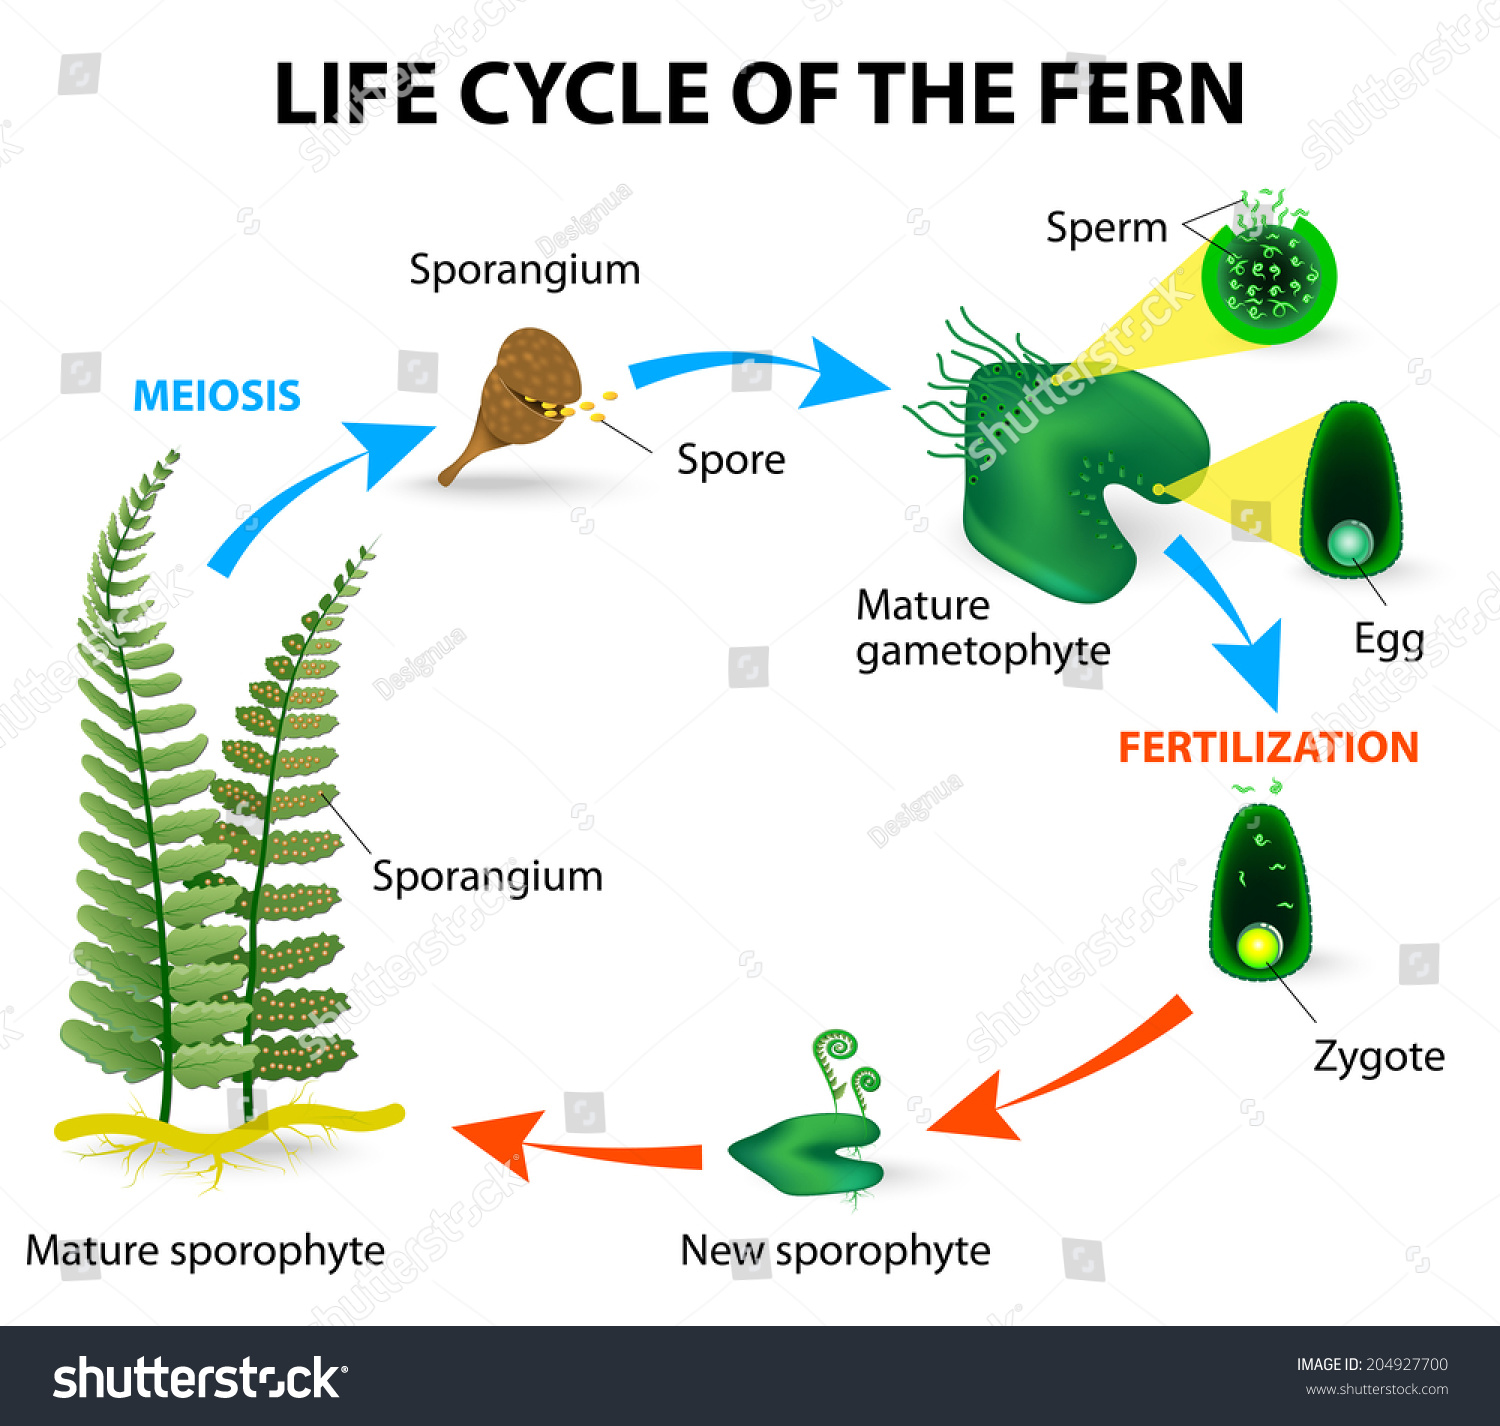 The Life Cycle Of Ferns Is Different From Other Land